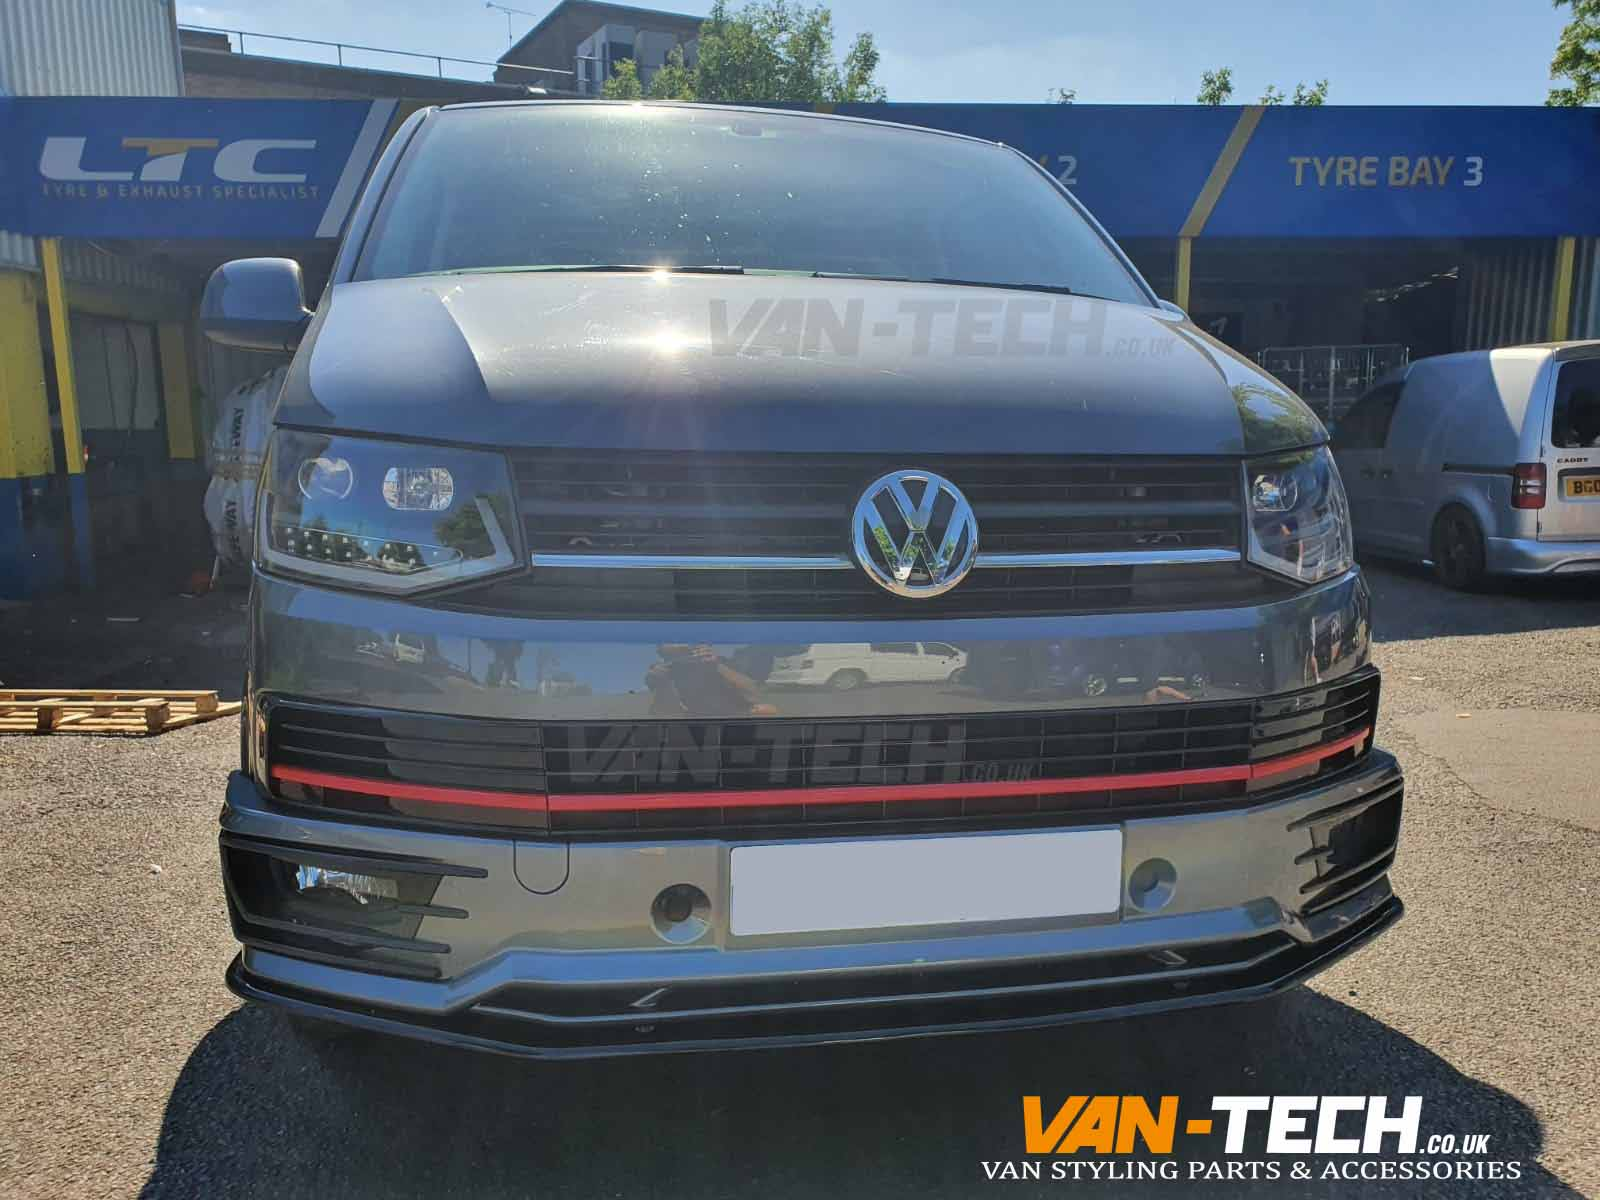 VW Transporter T6 Light Bar Headlights, Sportline Bumper, Splitter and Middle Inserts Red Trim